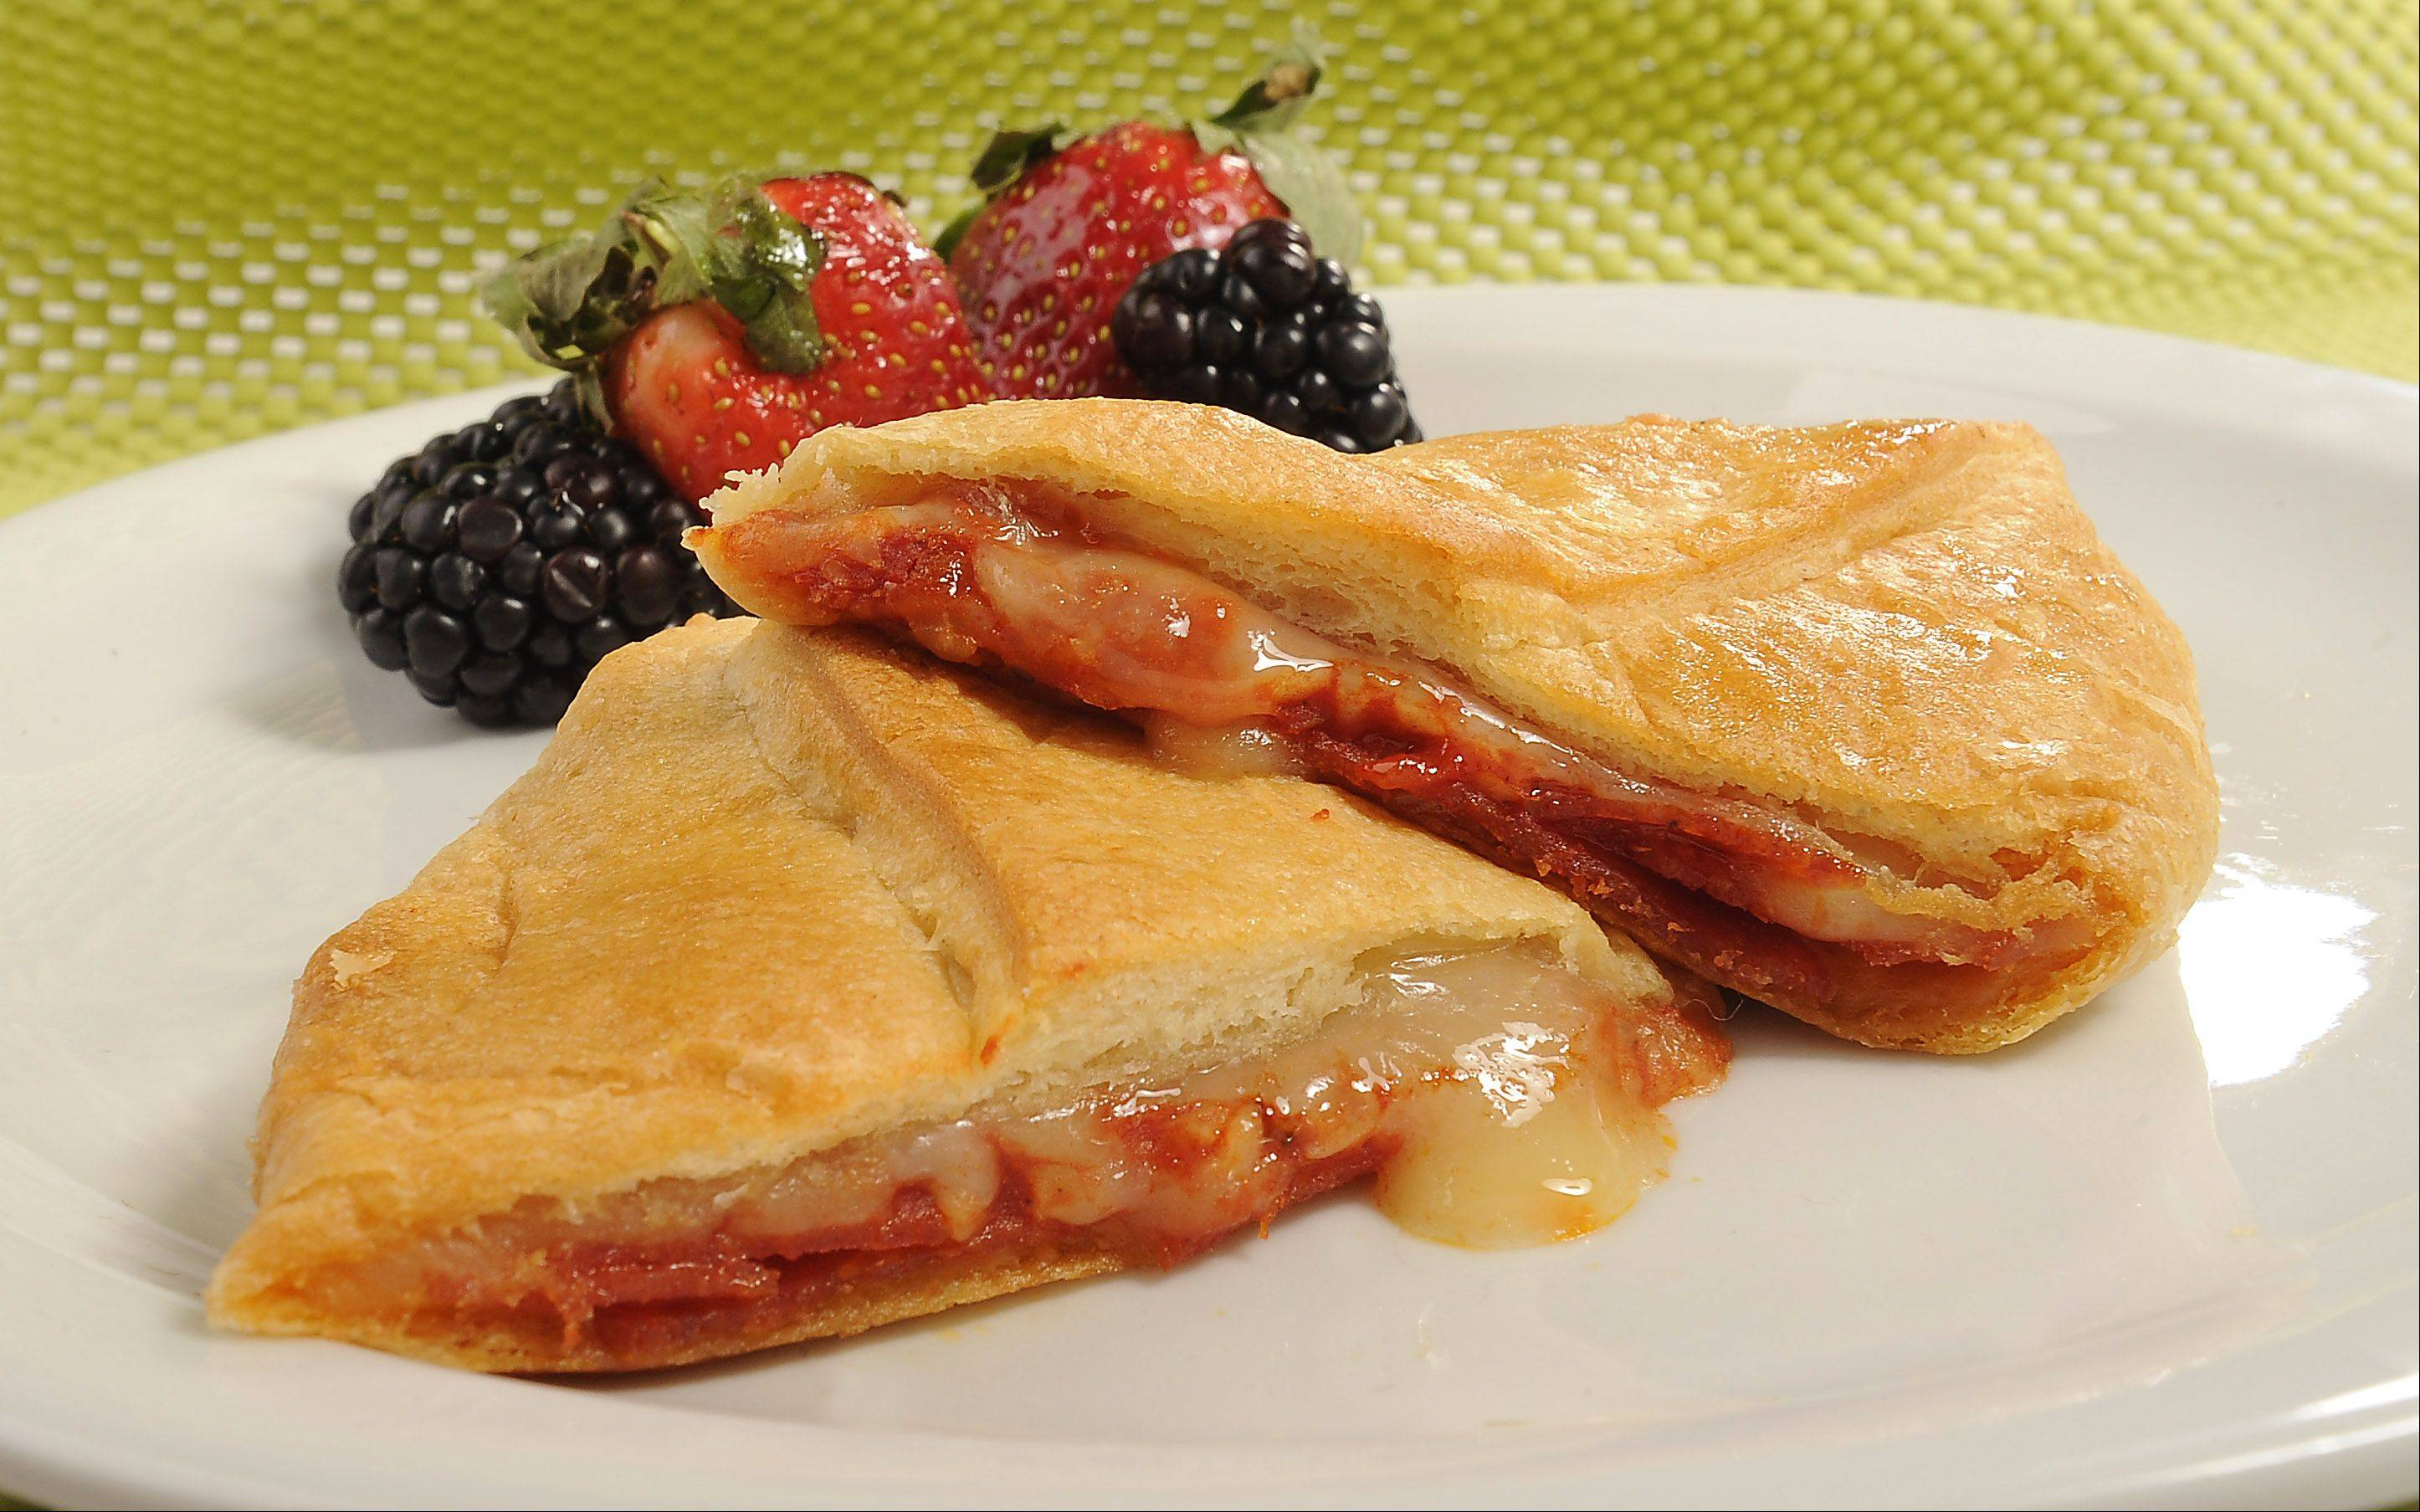 Pizza Pockets are a cinch to make at home and the fillings can be customized to please picky eaters.